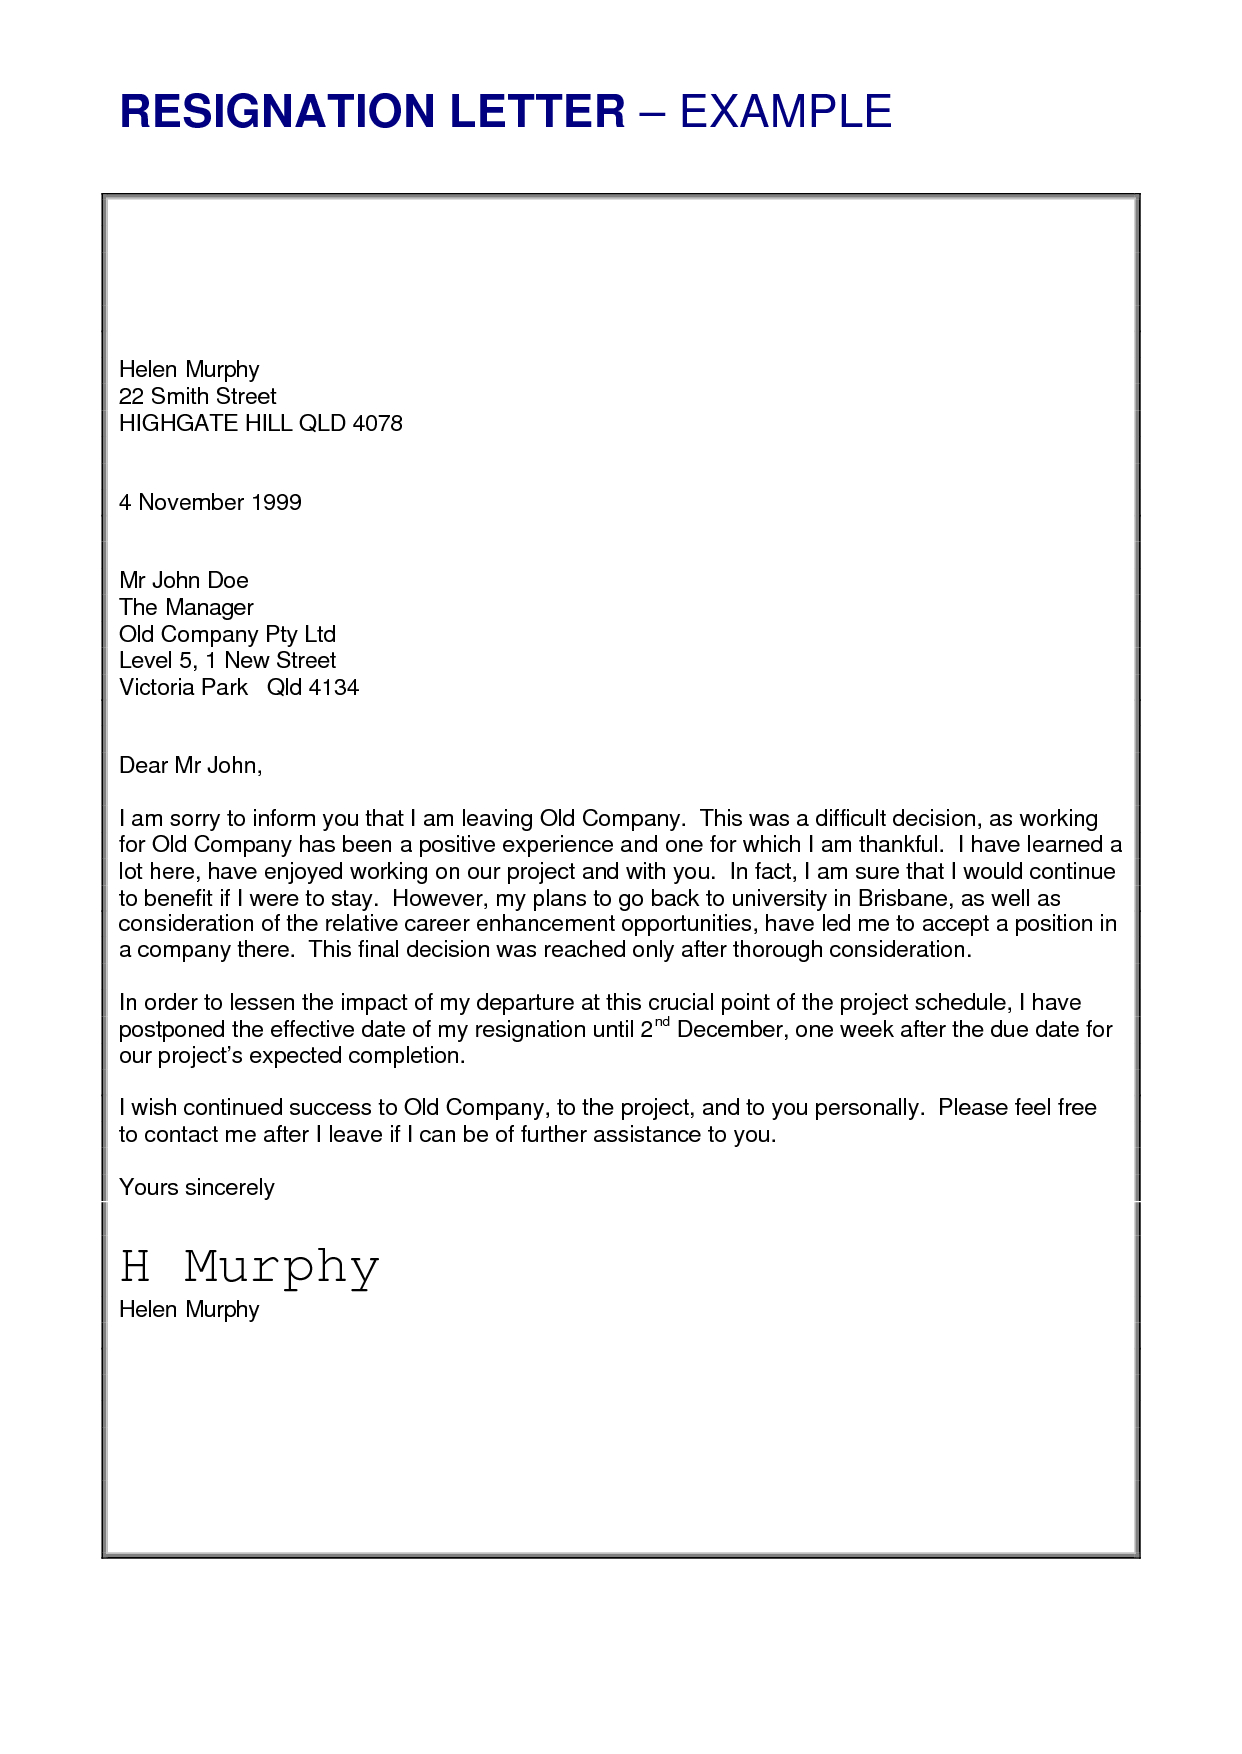 Resignation Letter Template Free Download - Job Resignation Letter Sample Loganun Blog